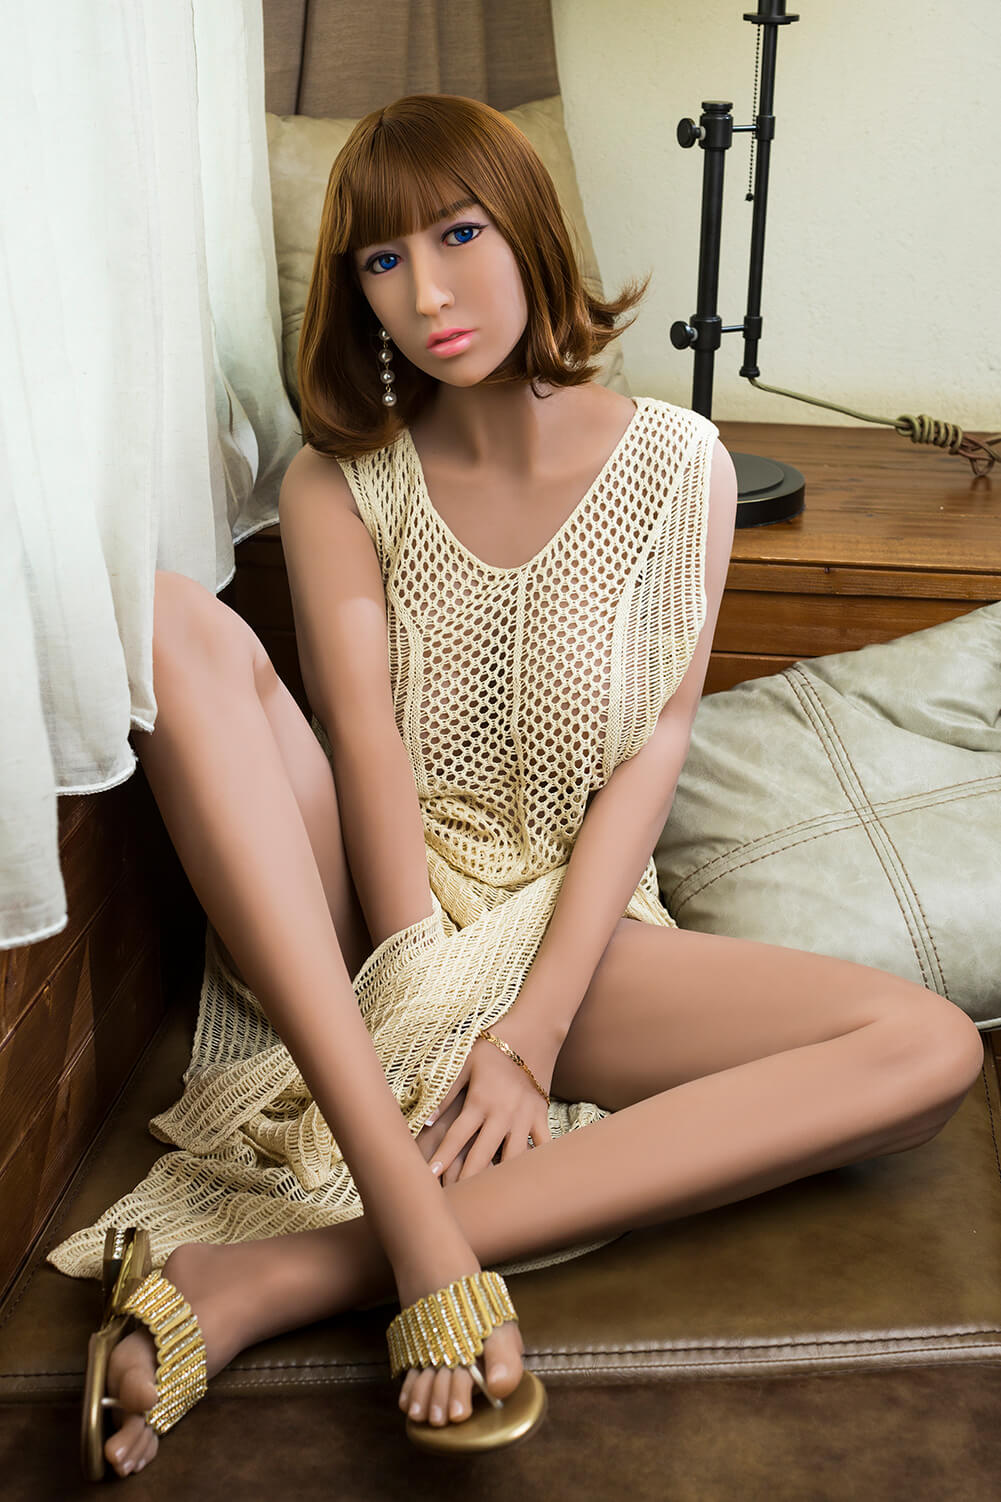 sex doll SY 171cm head 168 1 - Sex doll en france Adopte une doll